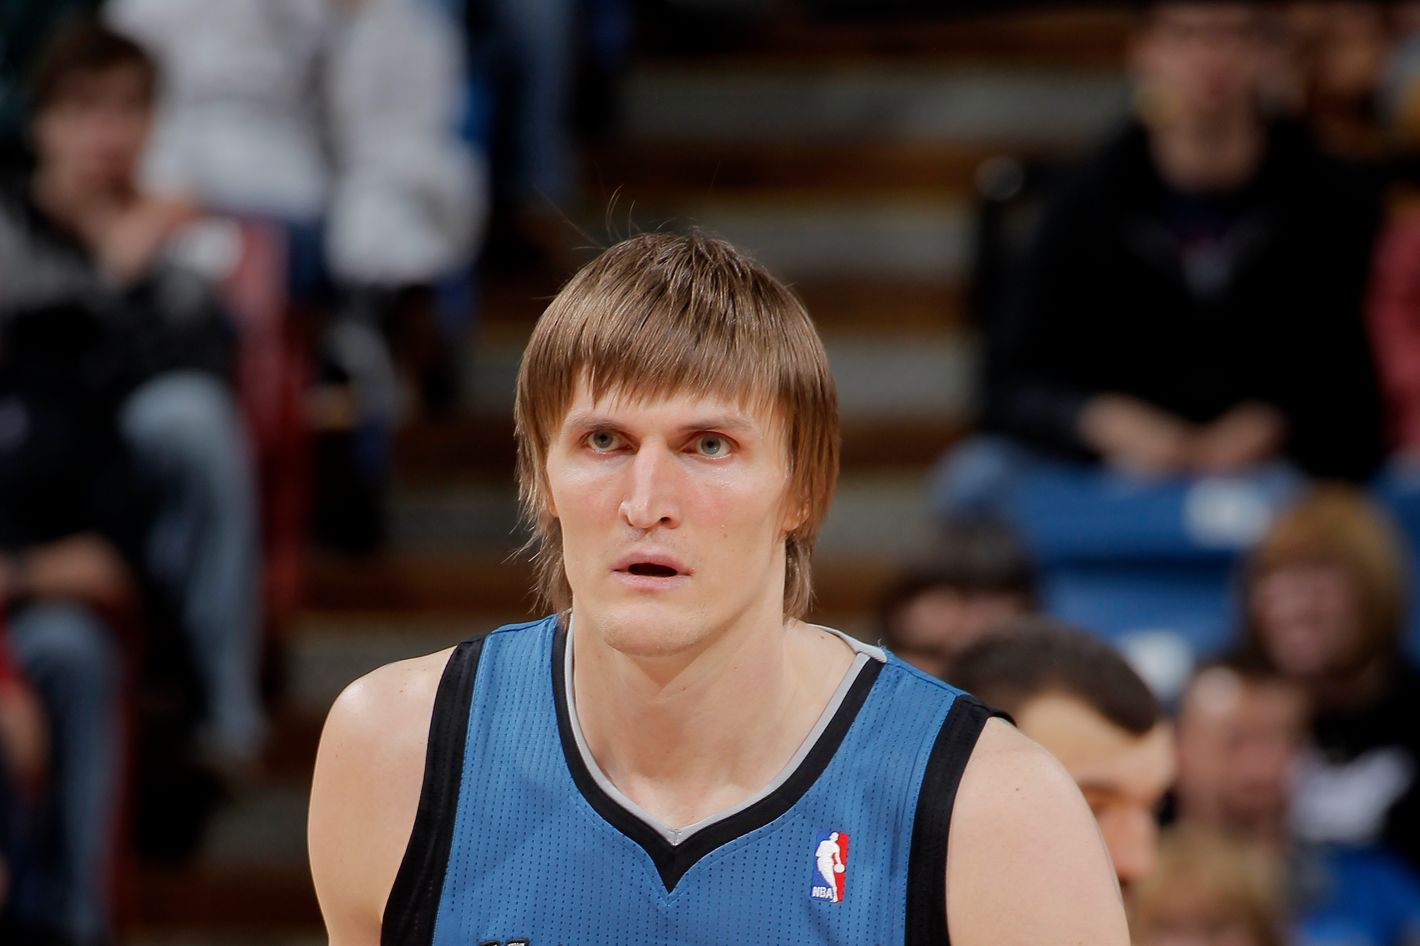 Andrei Kirilenko #47 of the Minnesota Timberwolves in a game against the Sacramento Kings on March 21, 2013 at Sleep Train Arena in Sacramento, California.